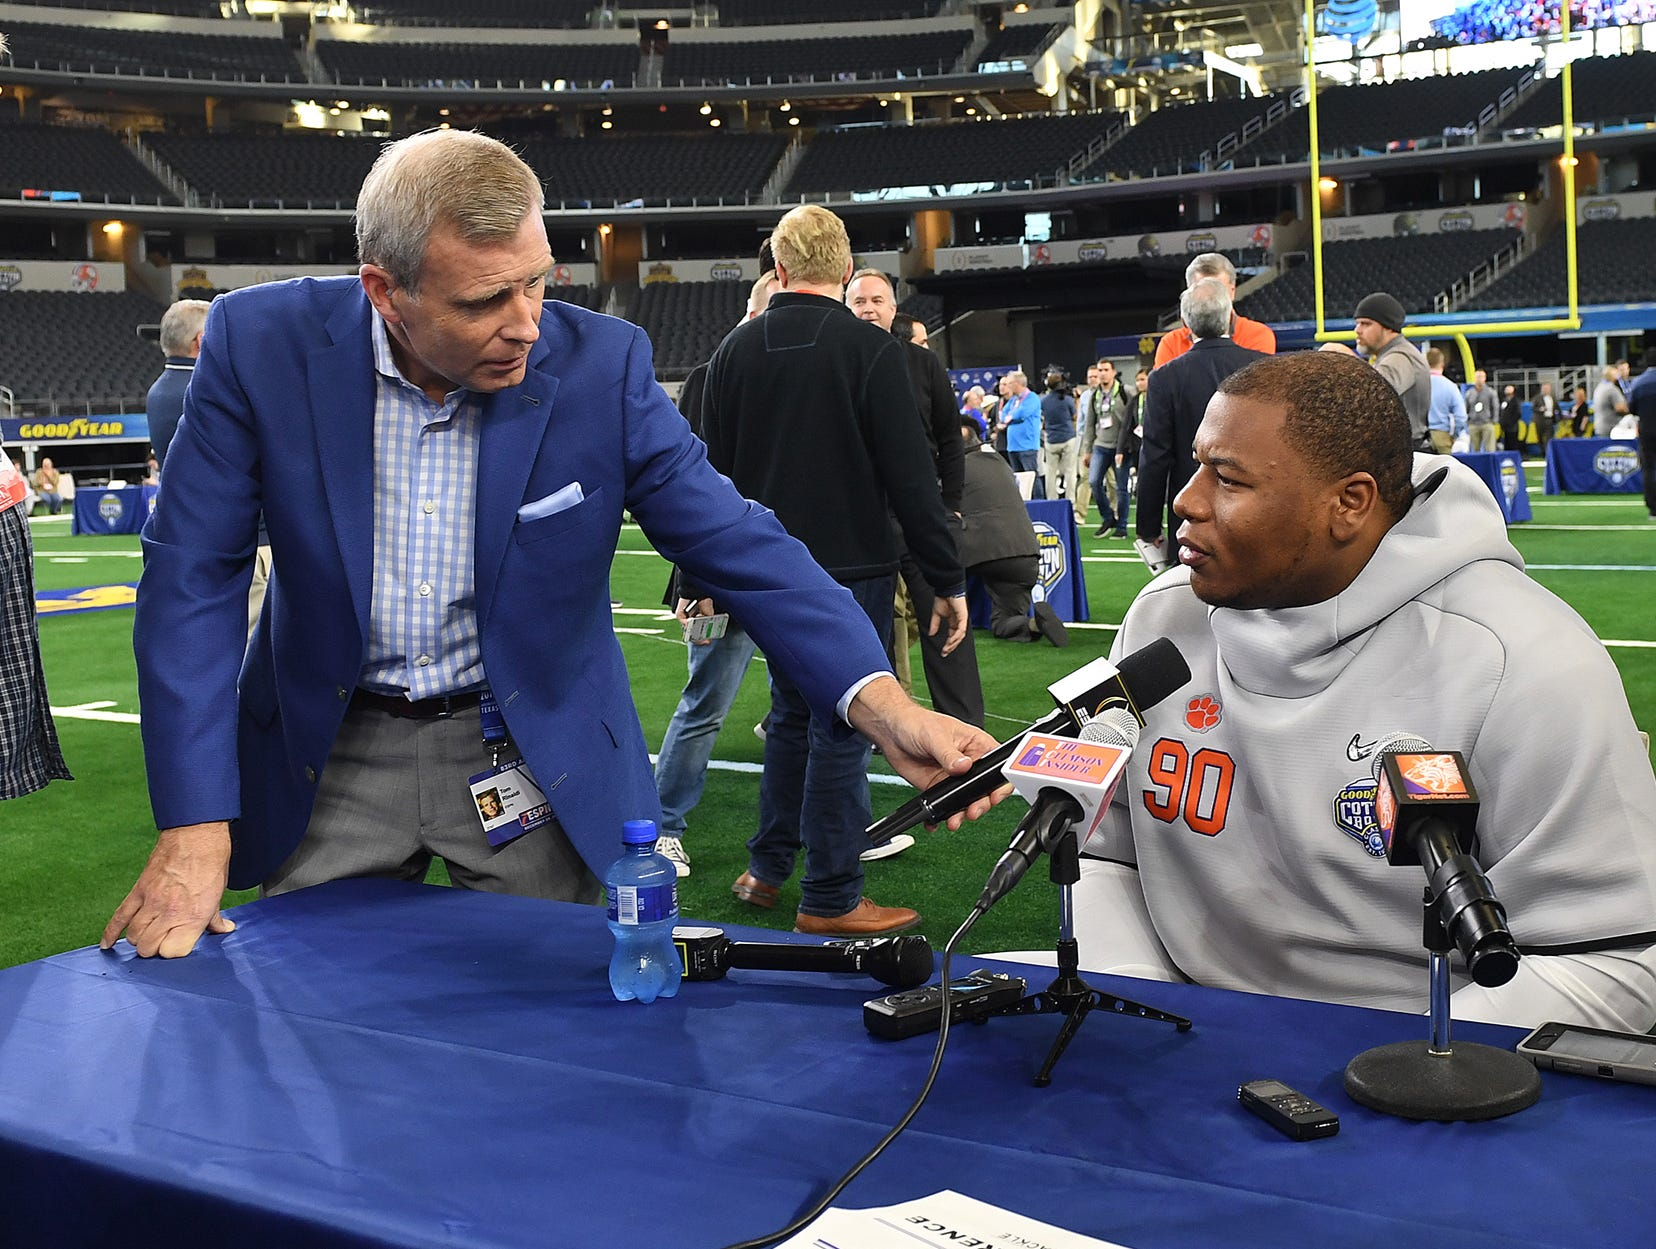 ESPN's Tom Rinaldi interviews Clemson defensive lineman Dexter Lawrence during the Tigers Cotton Bowl media day at AT&T Stadium in Arlington, TX Thursday, December 27, 2018.